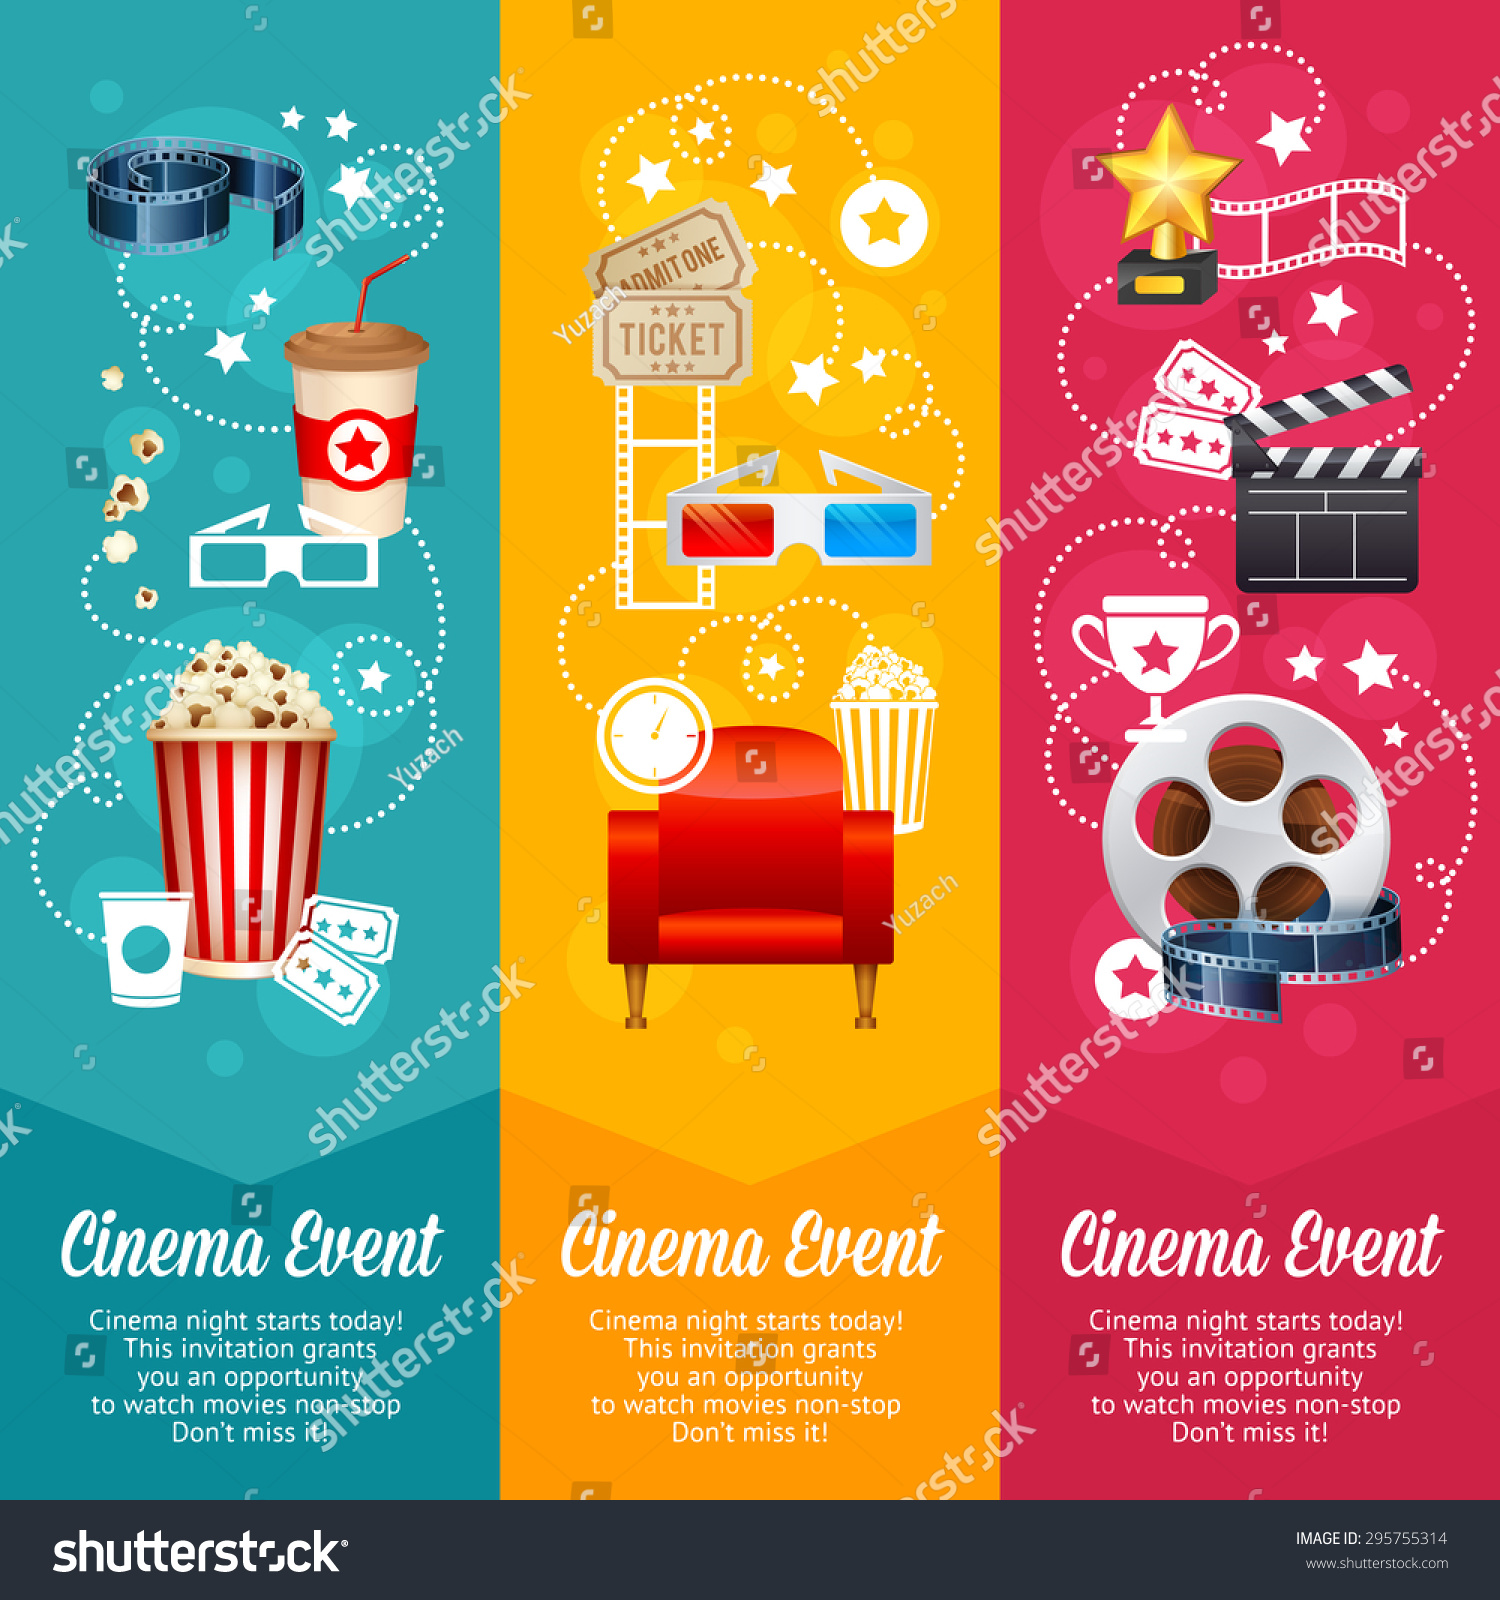 Great 1099 Template Excel Huge 1099 Template Word Shaped 2014 Monthly Calendar Templates 2015 Template Calendar Young 3d Animator Resume Templates Brown3d Character Modeler Resume Realistic Cinema Movie Poster Template Film Stock Vector 295755314 ..